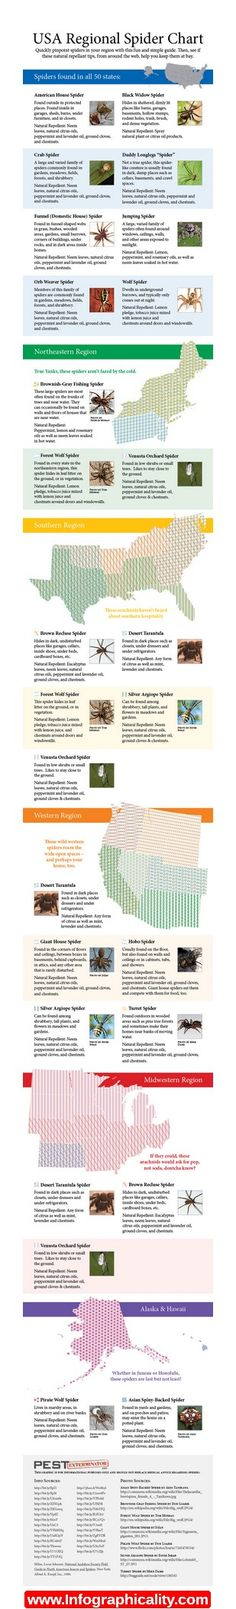 Spider Identification Chart Infographic - http://infographicality.com/spider-identification-chart-infographic/